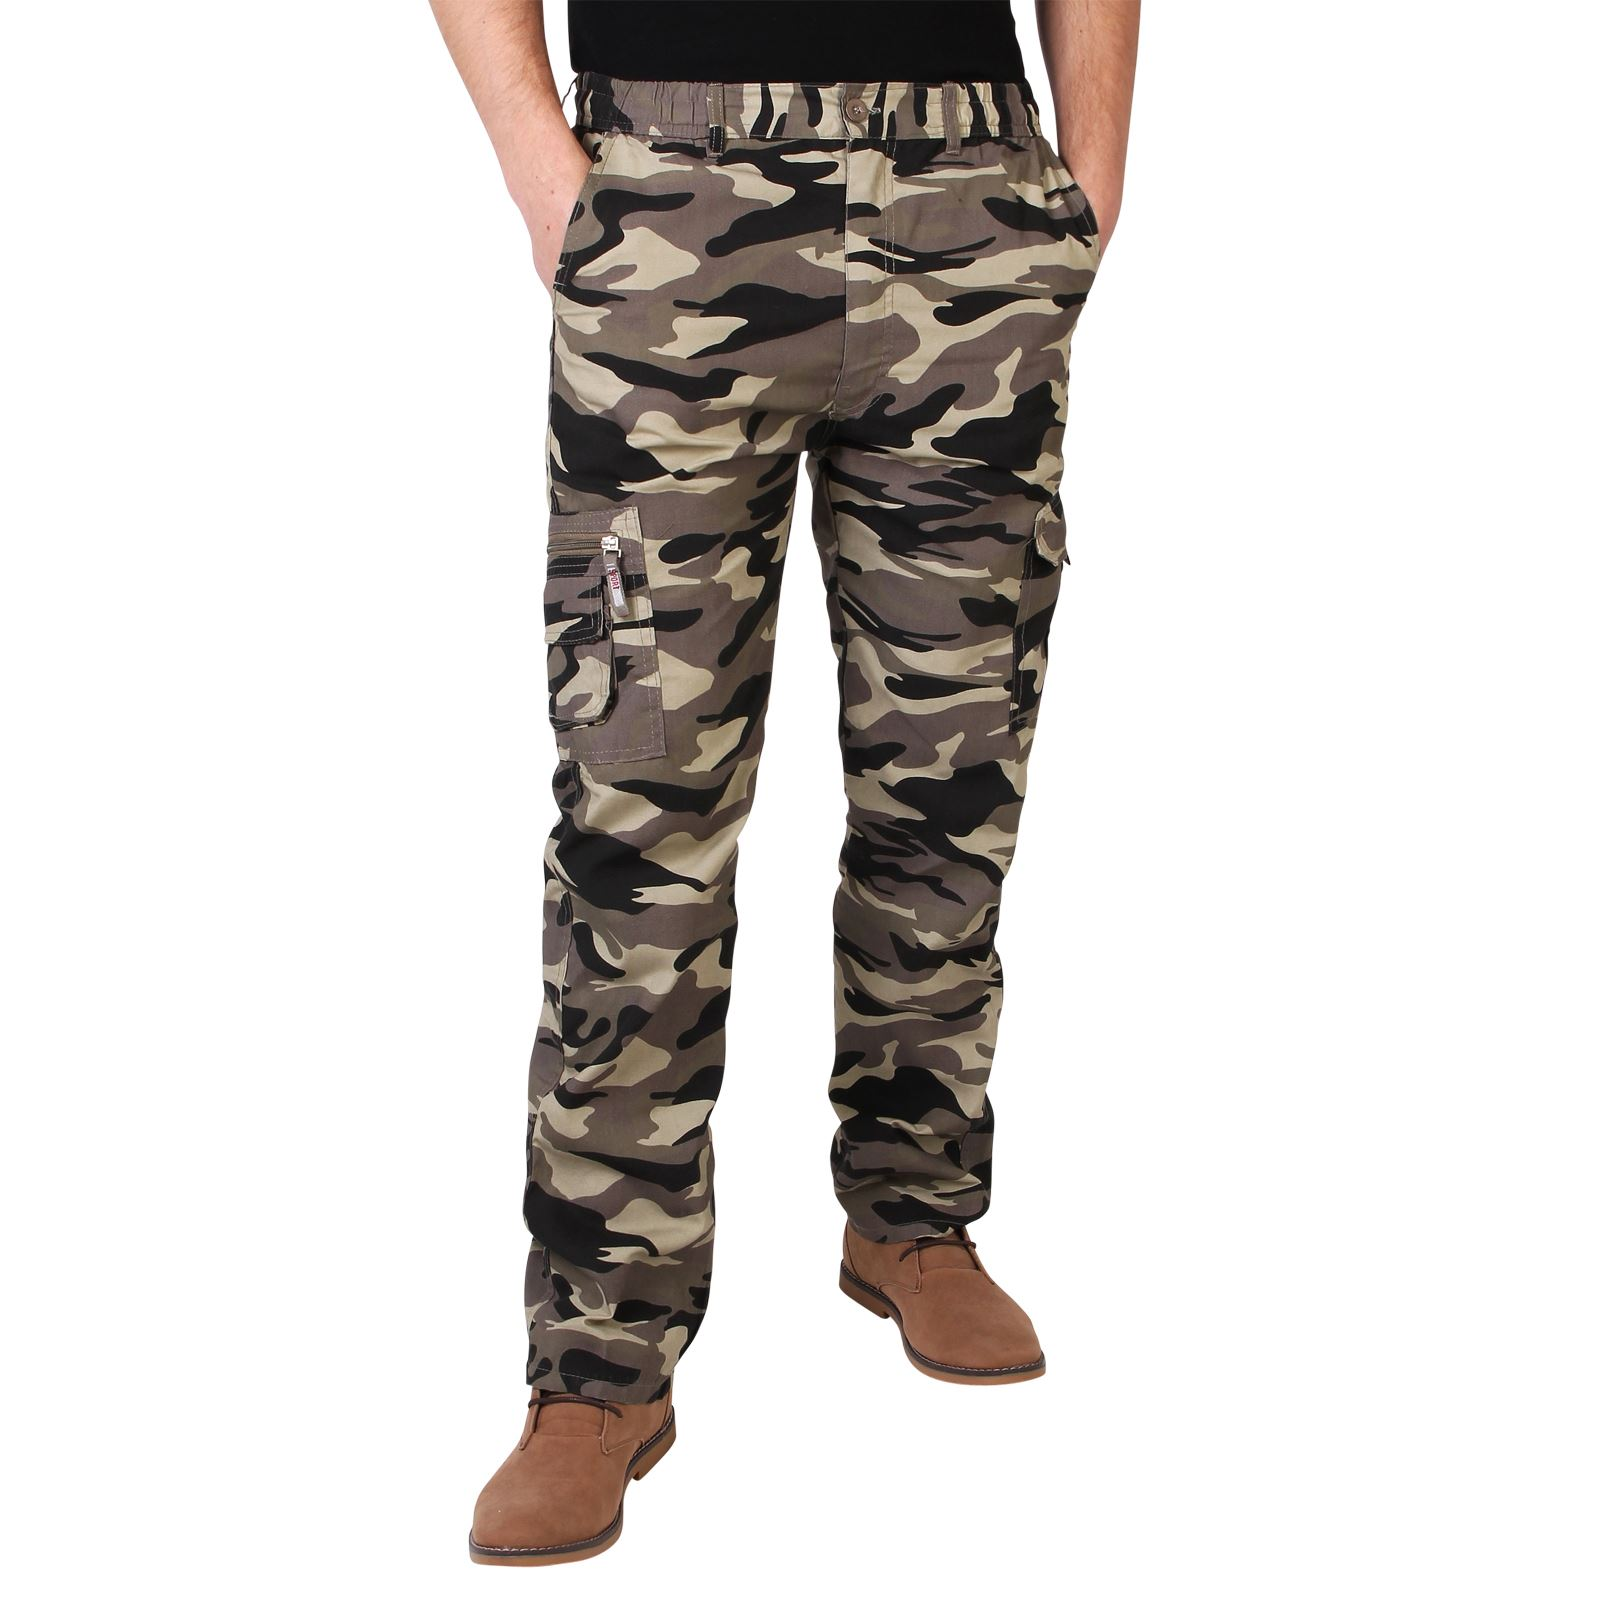 herren hose cargo combat camouflage tarnfarbe milit r arbeitshose freizeithose ebay. Black Bedroom Furniture Sets. Home Design Ideas